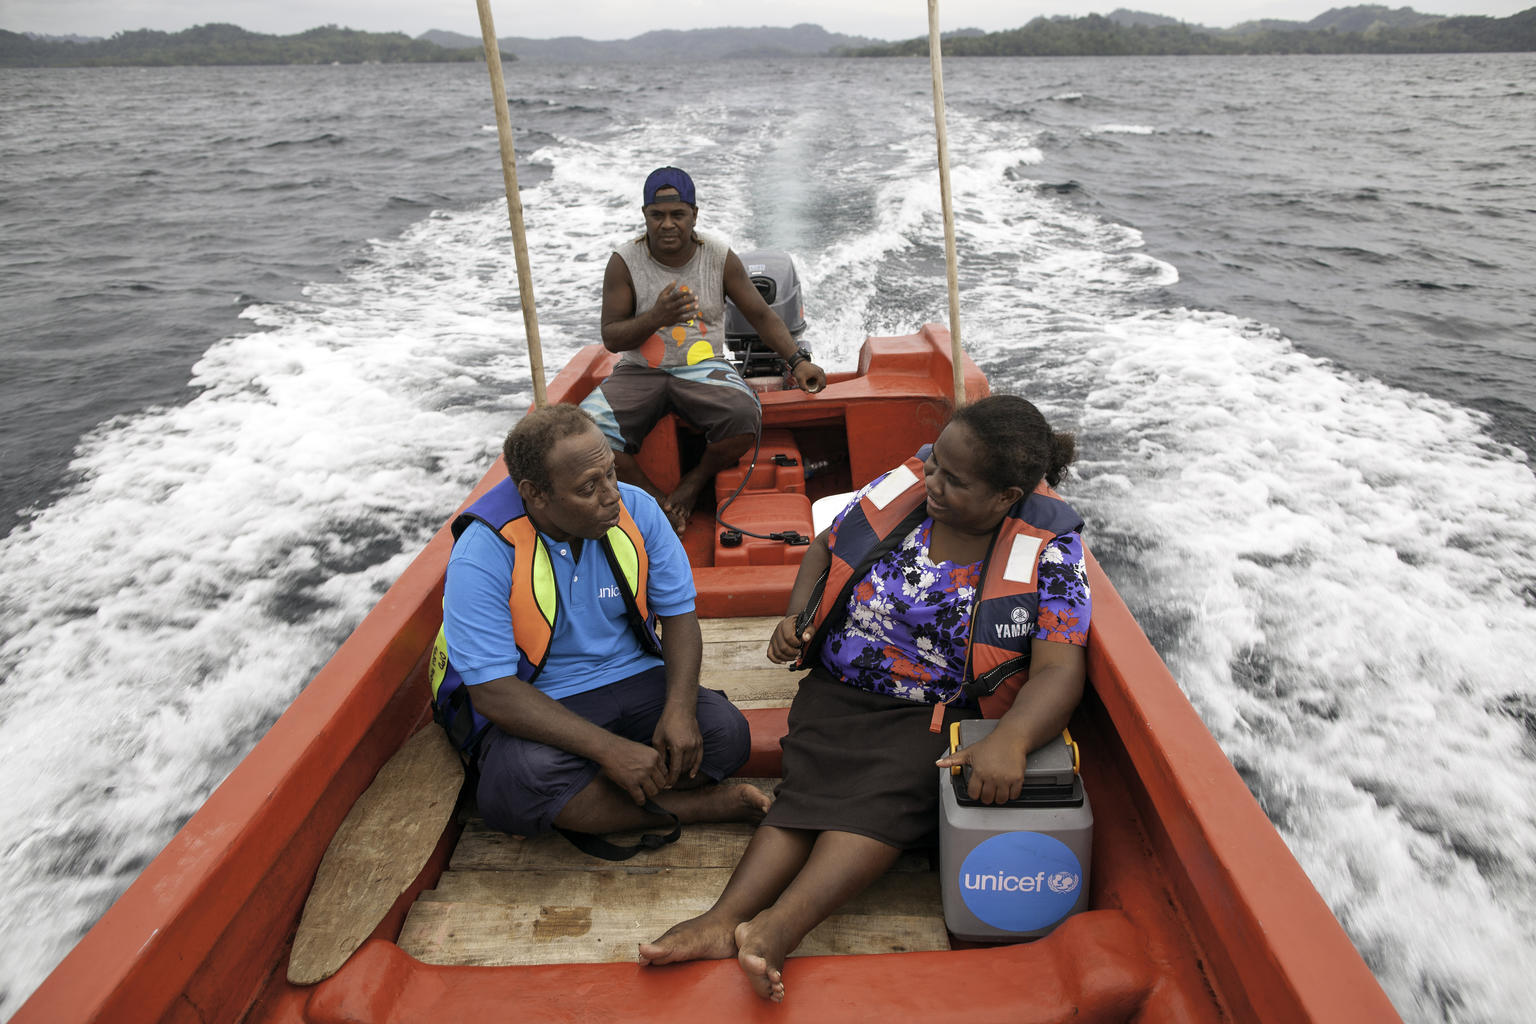 UNICEF Health Worker Paul Maesiala travels up to 3 hours by boat to reach children in remote Solomon Island communities